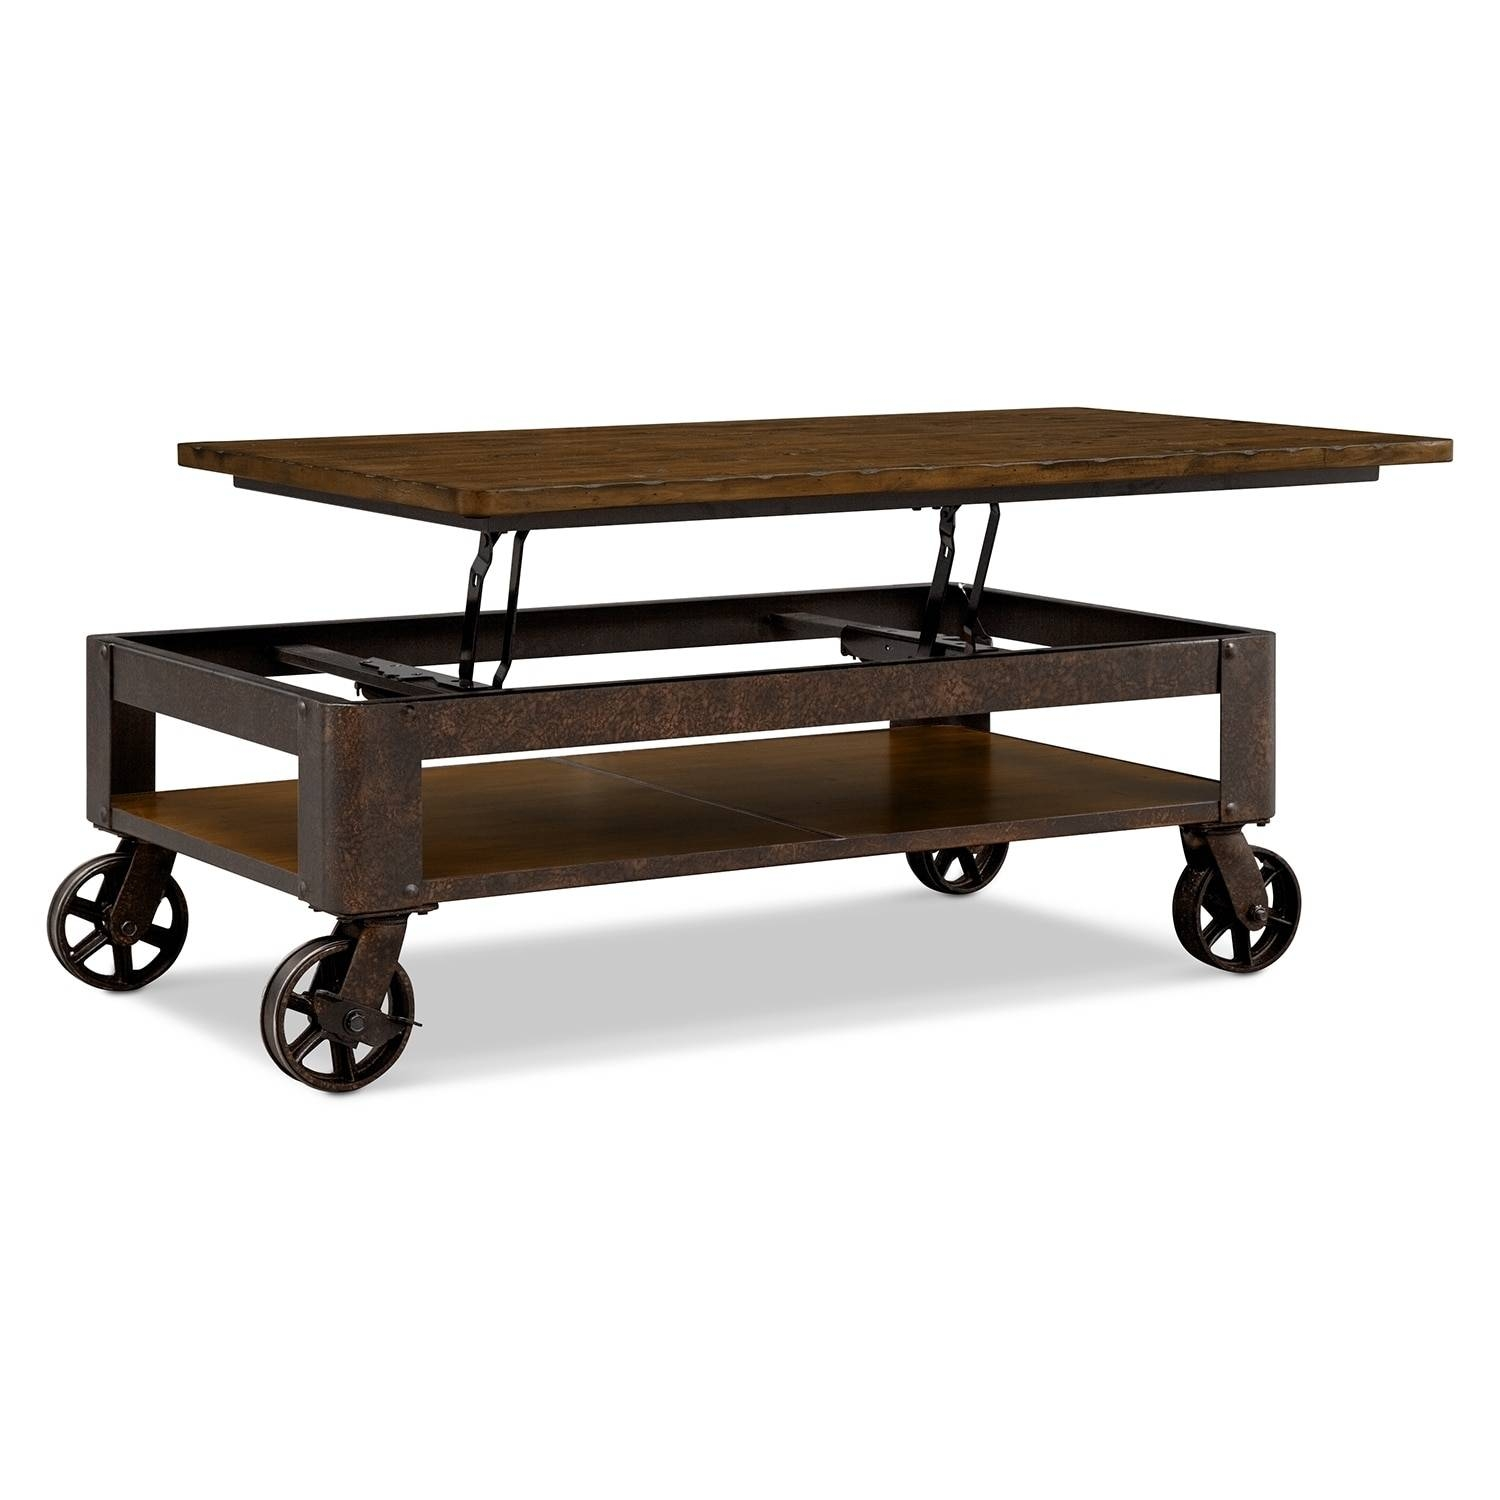 Shortline Lift-Top Cocktail Table - Distressed Pine | Value City intended for Hinged Top Coffee Tables (Image 24 of 30)